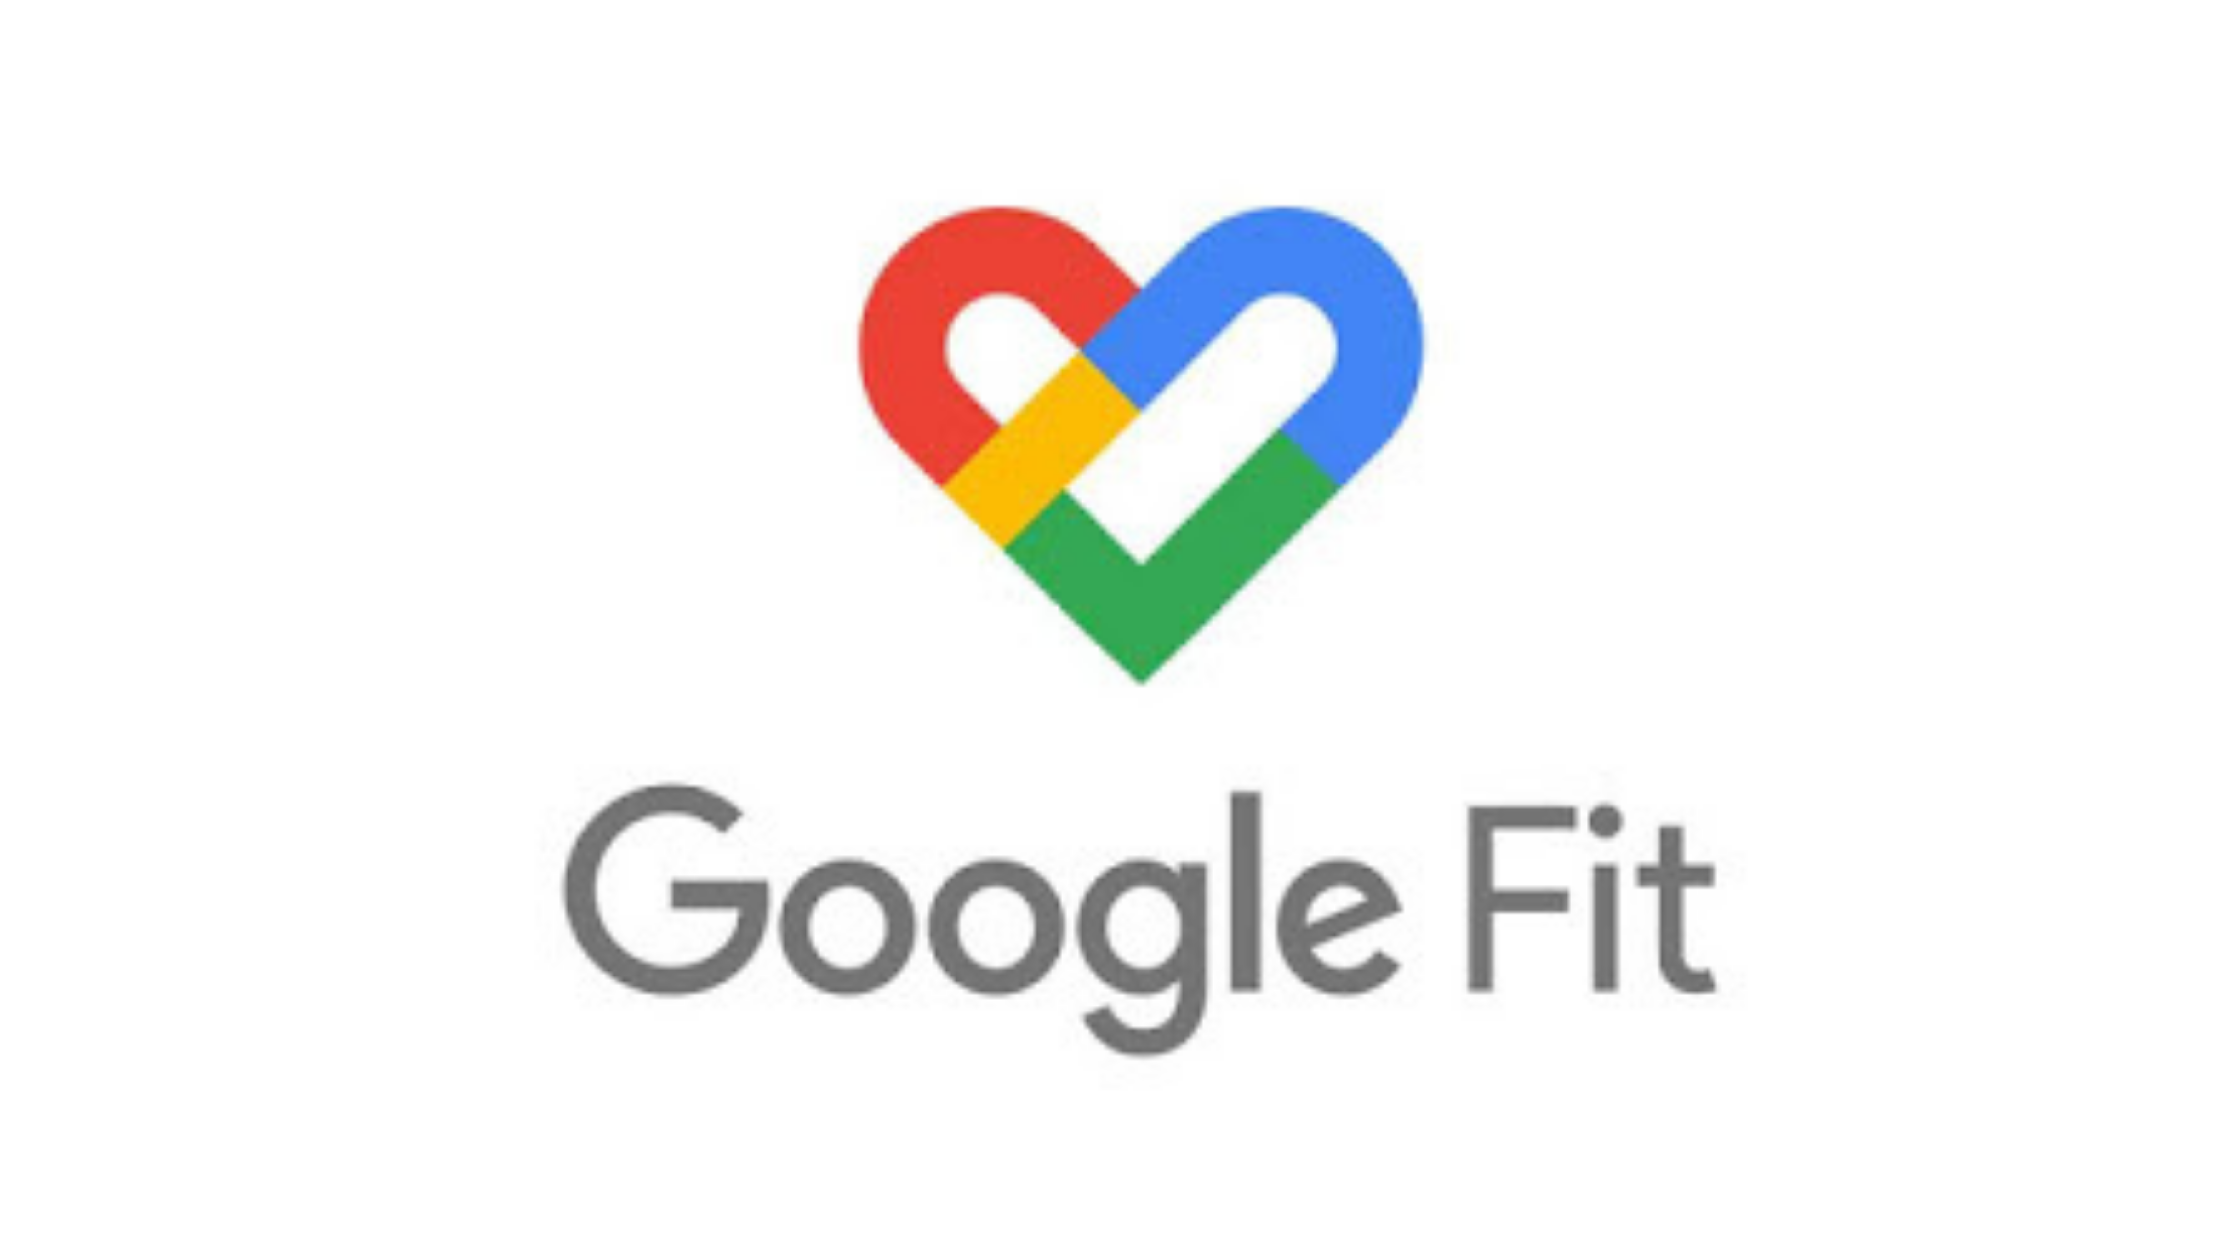 Google Fit for Fitness Tracking